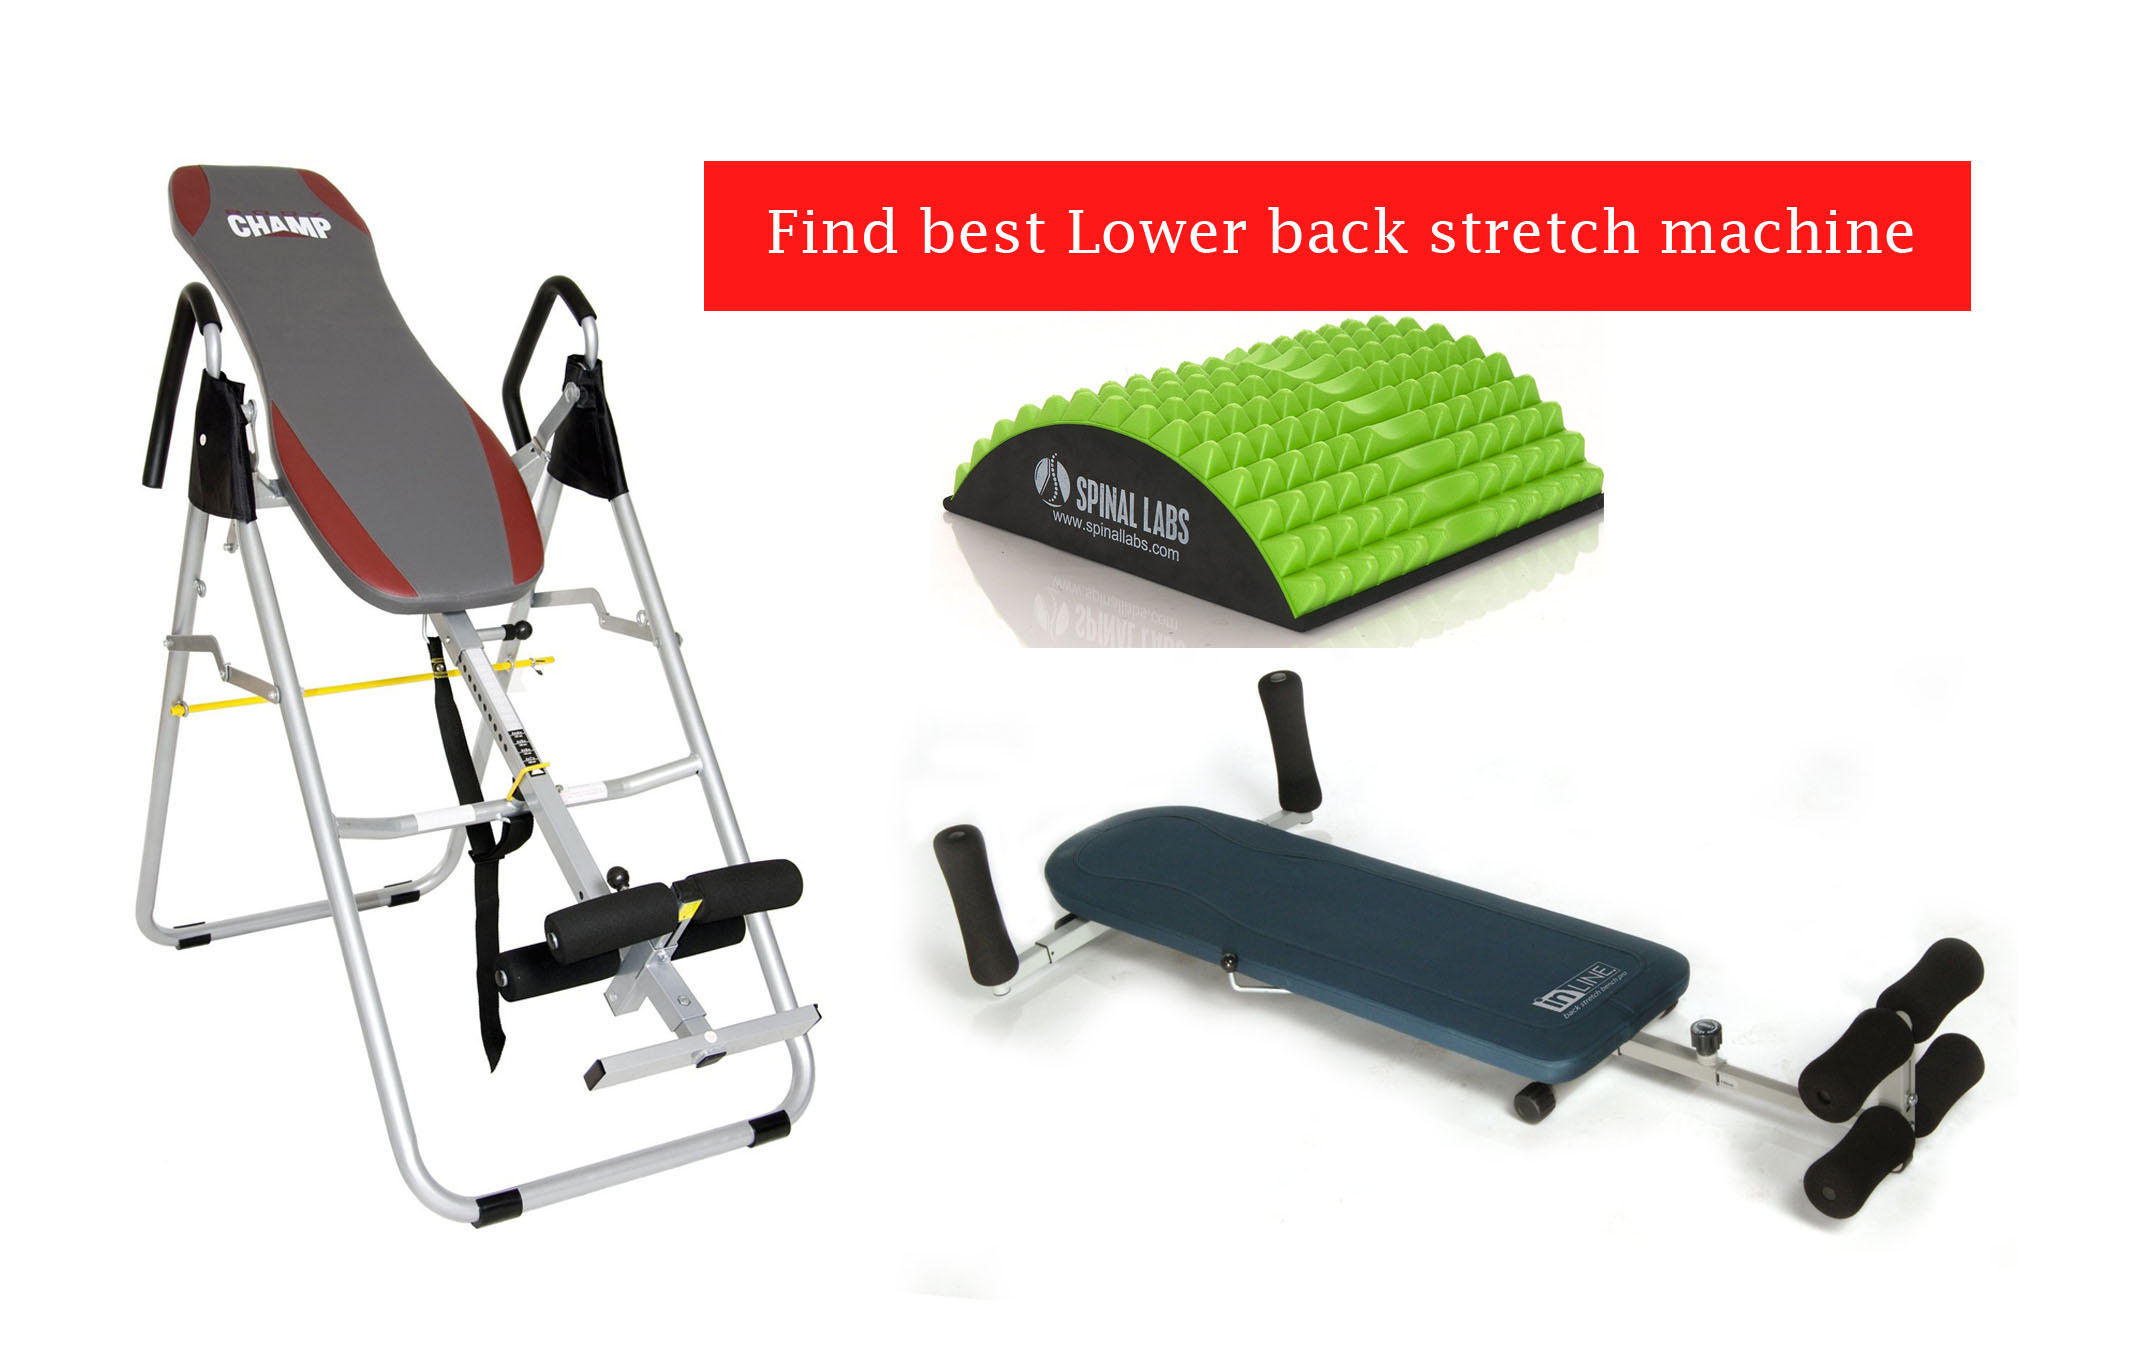 best chair after lower back surgery adirondack cushions target stretch machine find for you pain